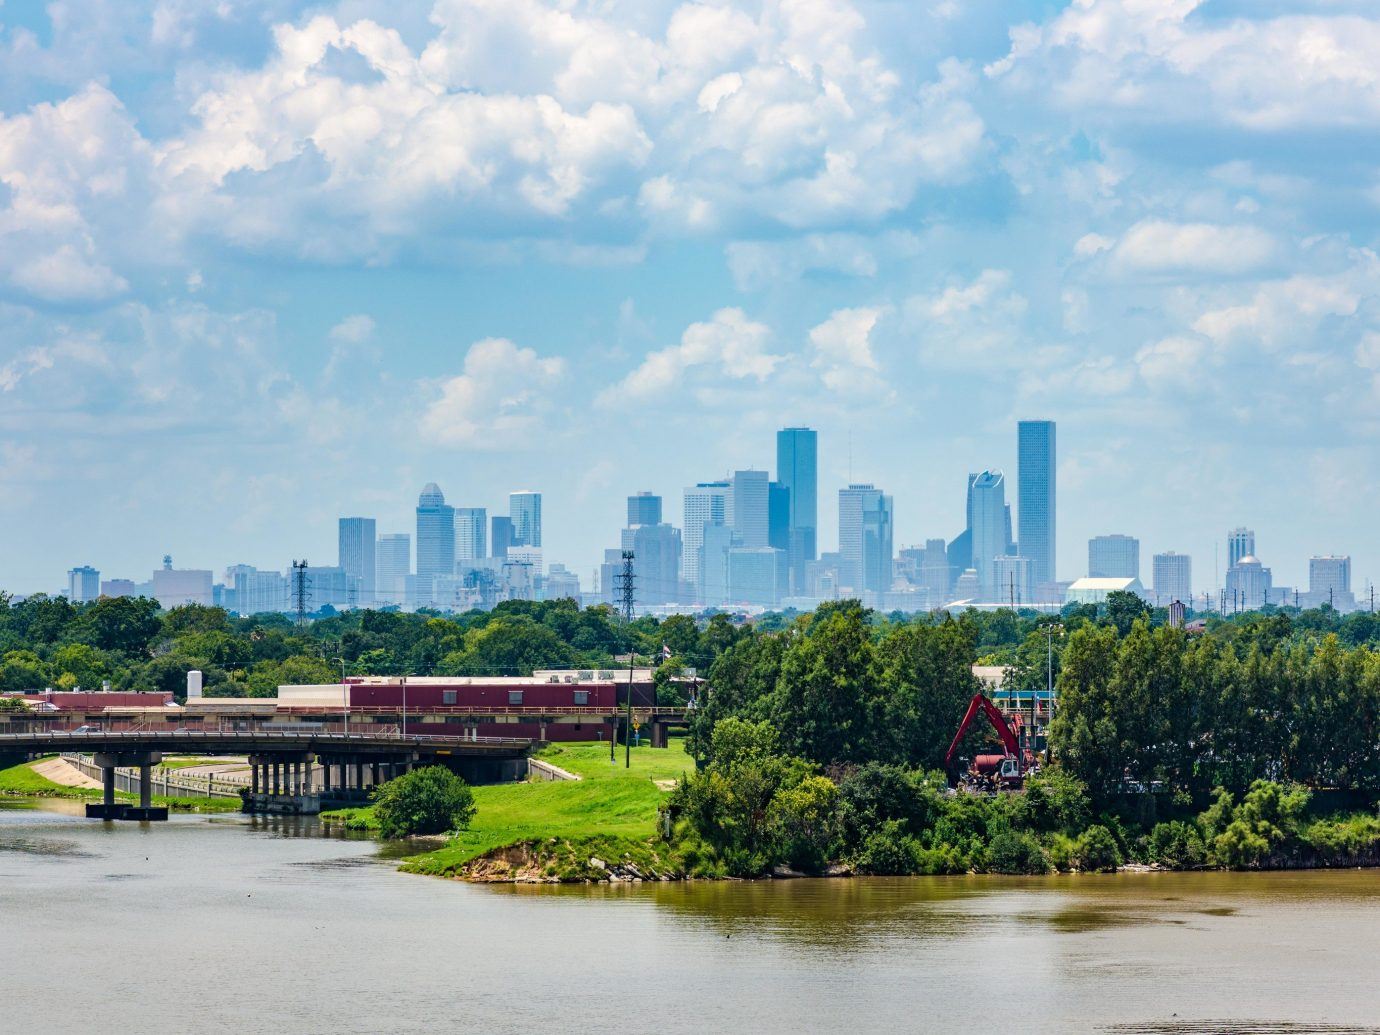 Houston Outdoors + Adventure Texas Trip Ideas metropolitan area skyline City daytime cityscape sky urban area skyscraper reflection water River metropolis tree bank Downtown tower block cloud water resources horizon landscape grass